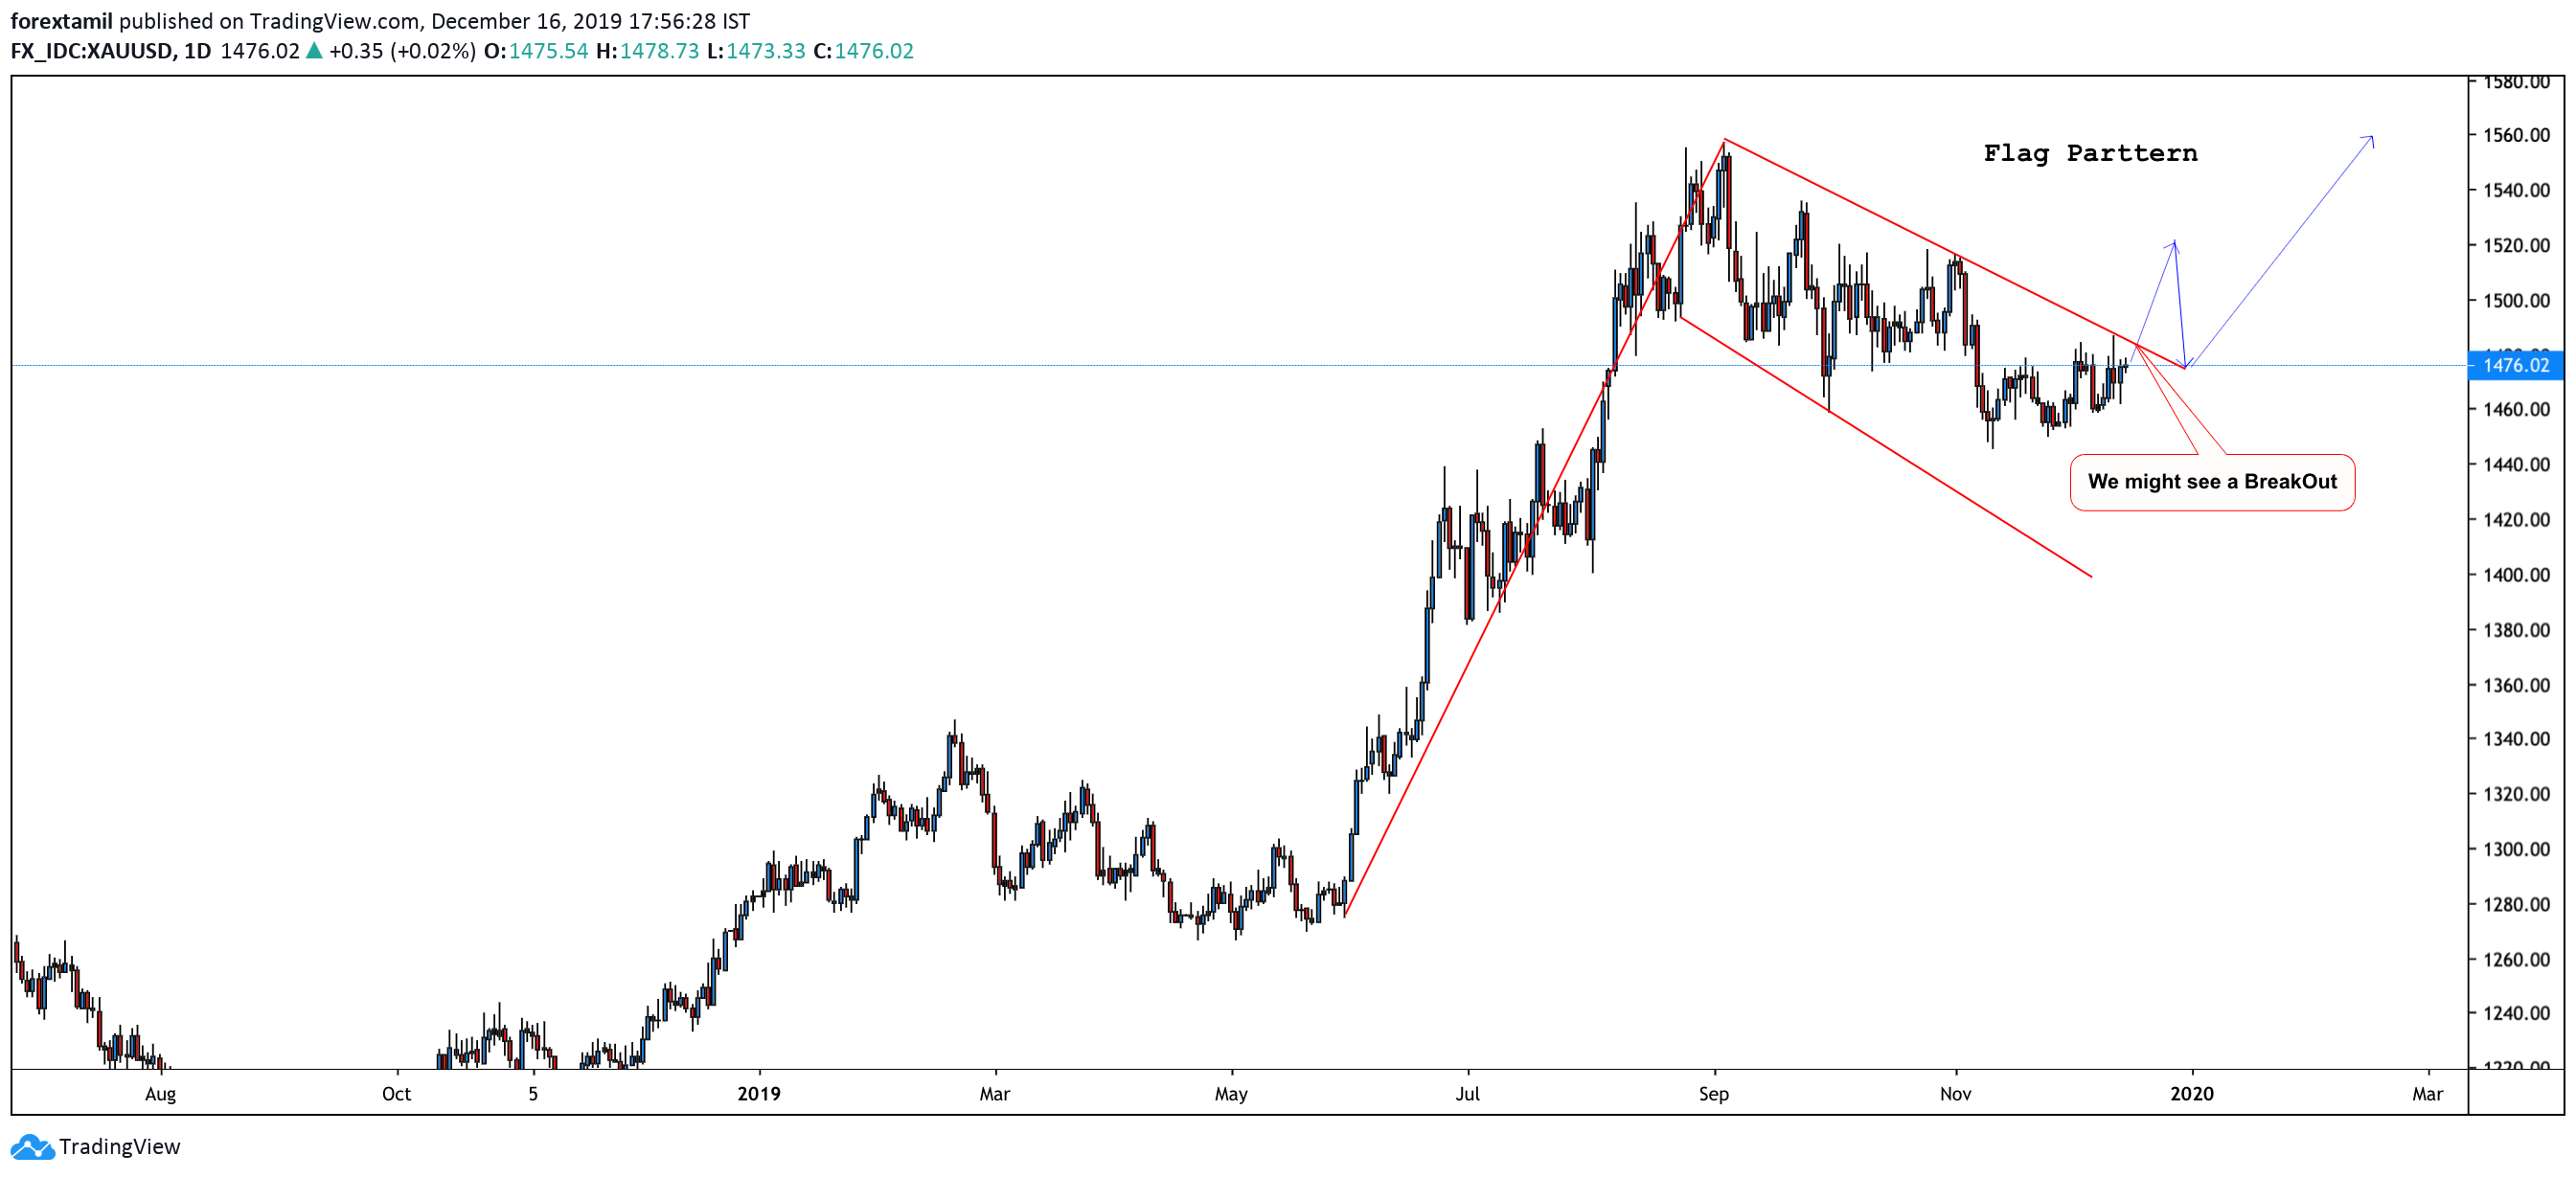 XAU/USD FORMS A FLAG PATTERN ON A DAILY CHART